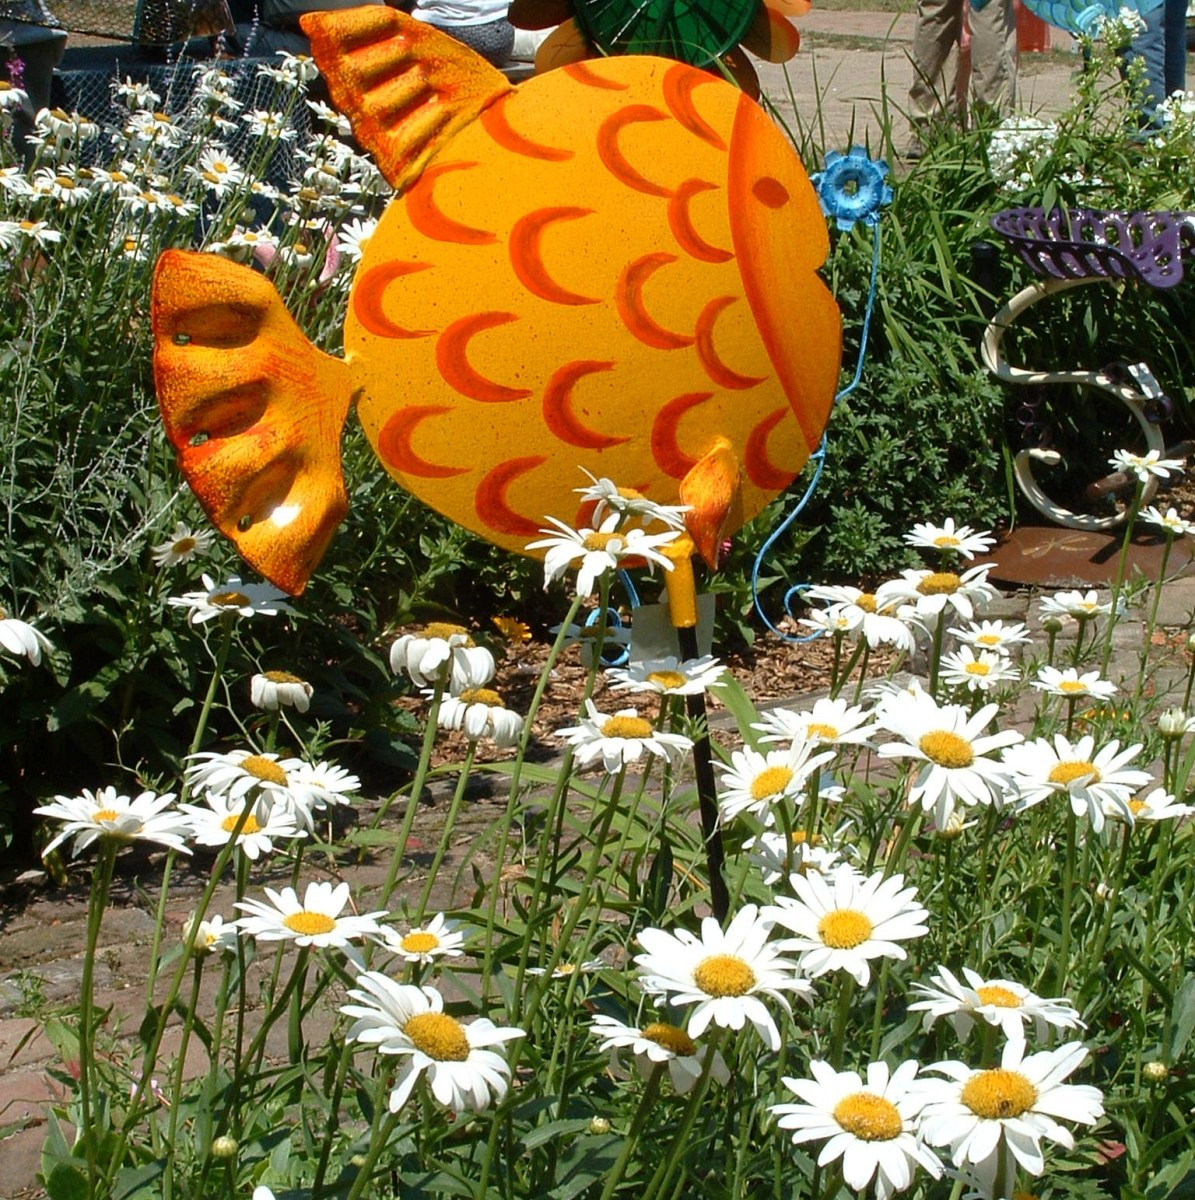 Whimsical fish sculpture.